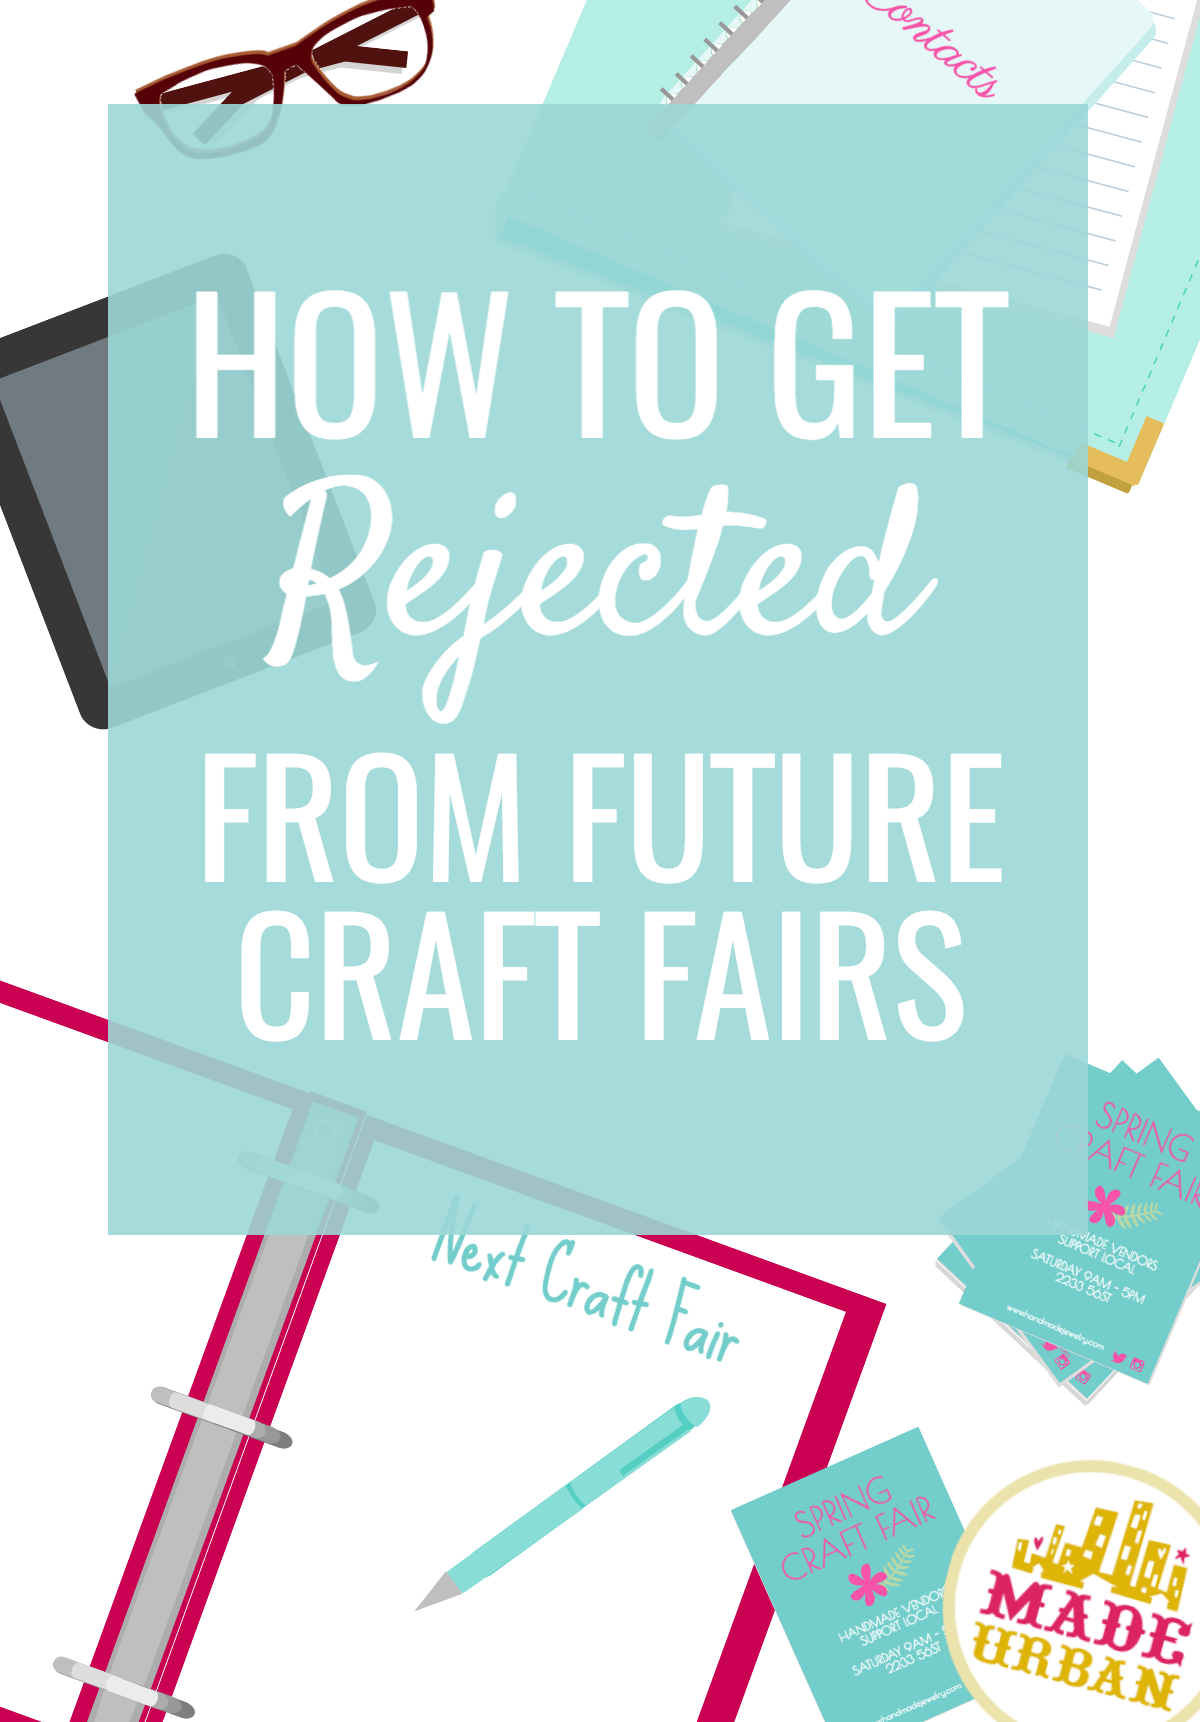 Competition makes it hard enough to get accepted to a craft fair. Don't make this one mistake that's sure to get your application rejected.